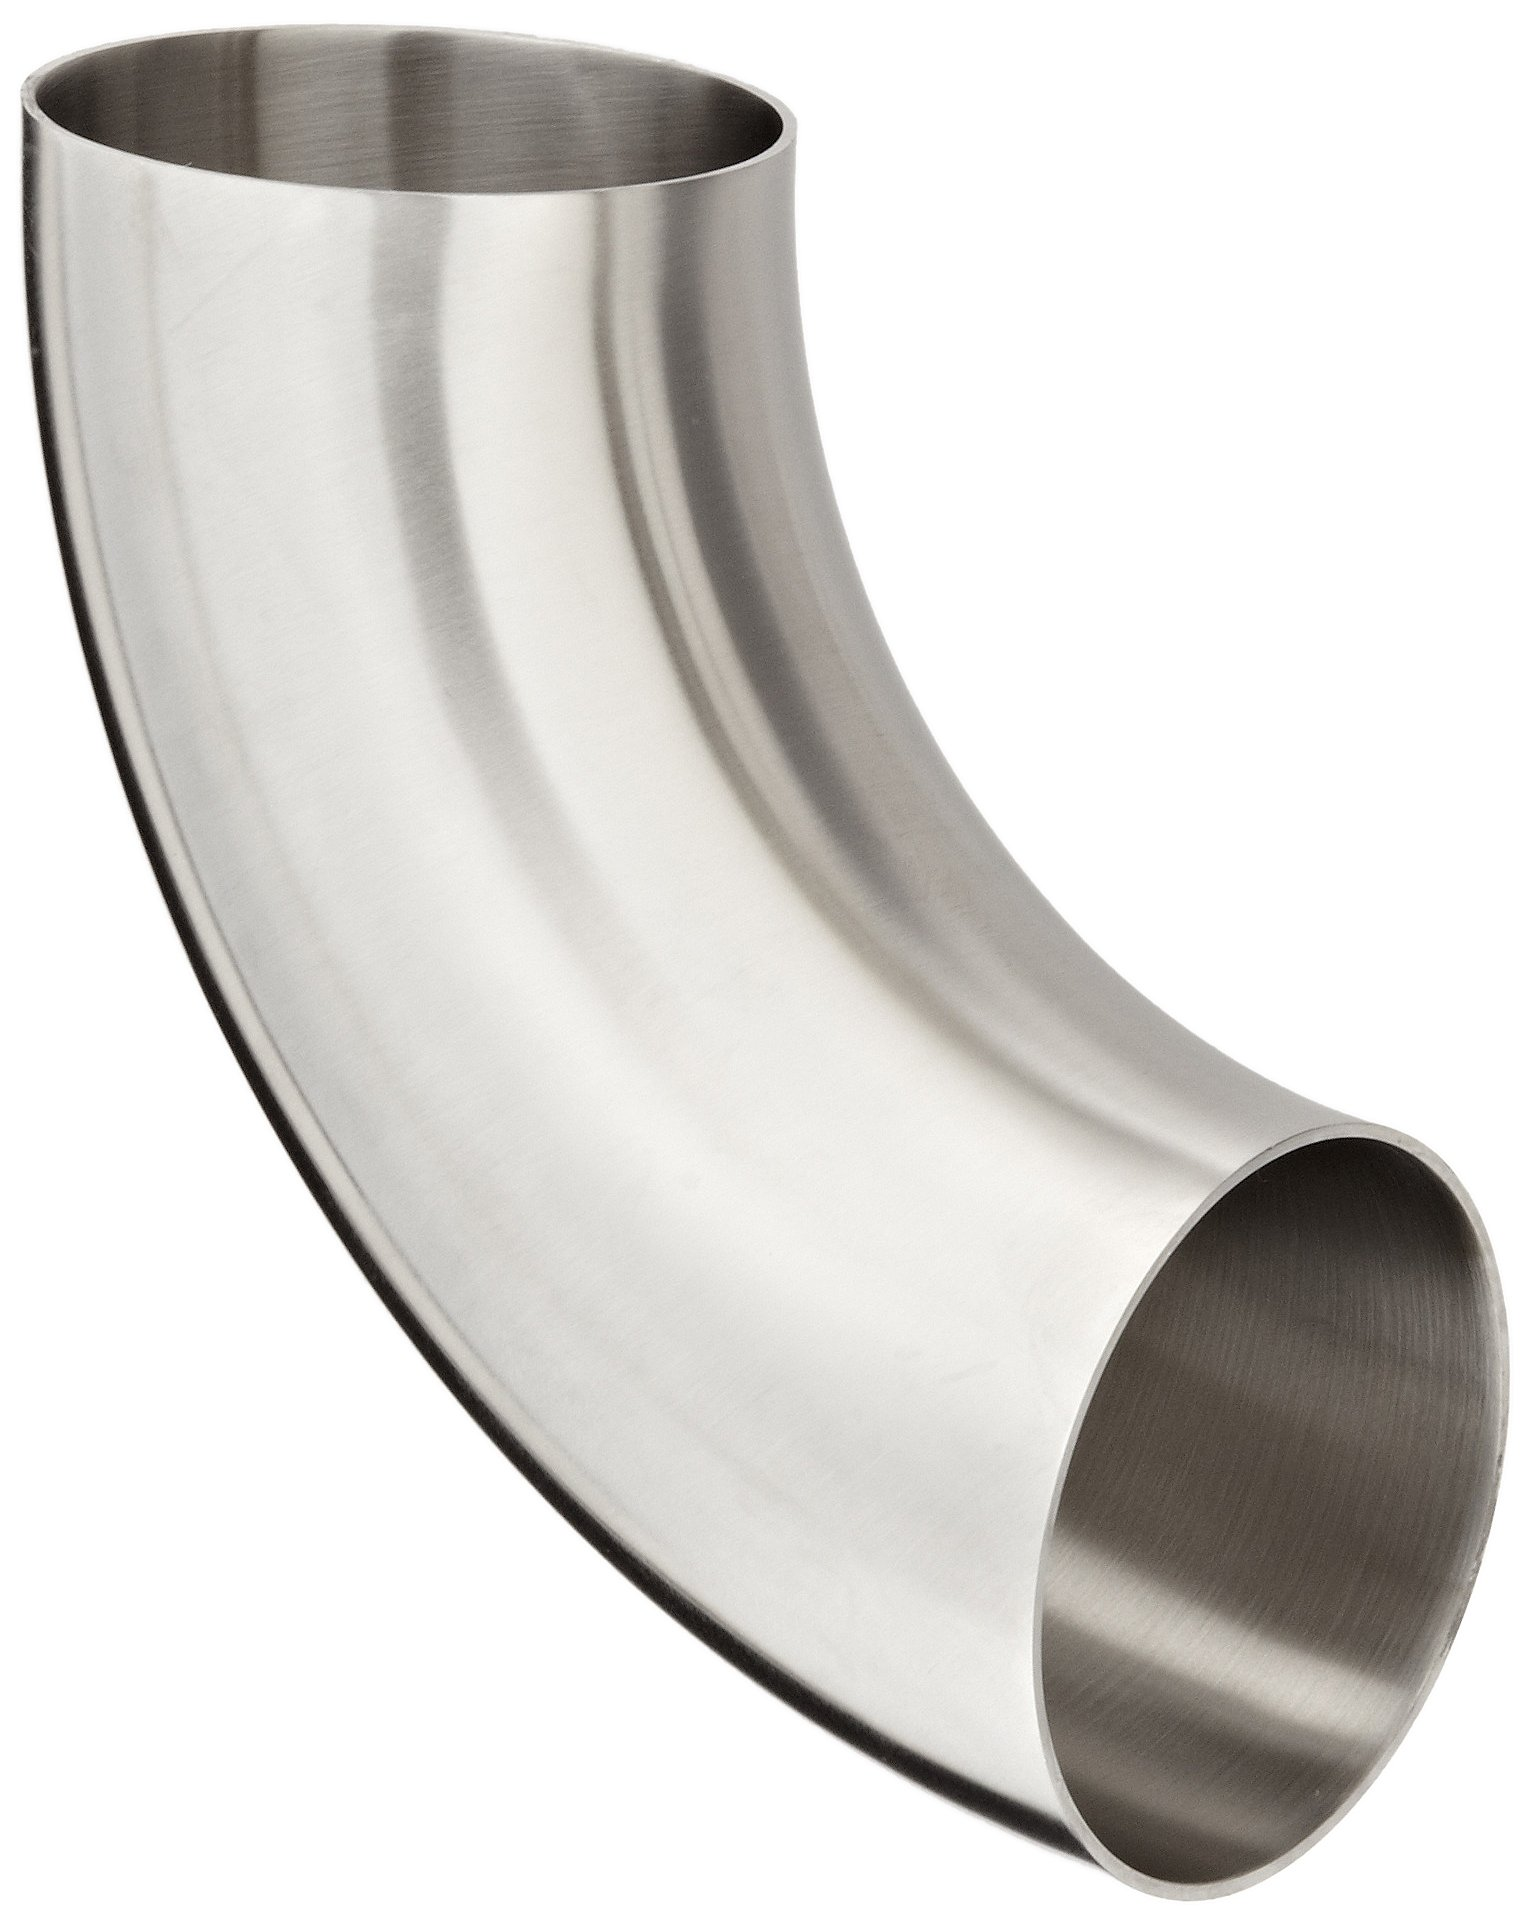 Dixon B2WCL-G300P Stainless Steel 304 Sanitary Fitting, 90 Degree Polished Weld Short Elbow, 3'' Tube OD